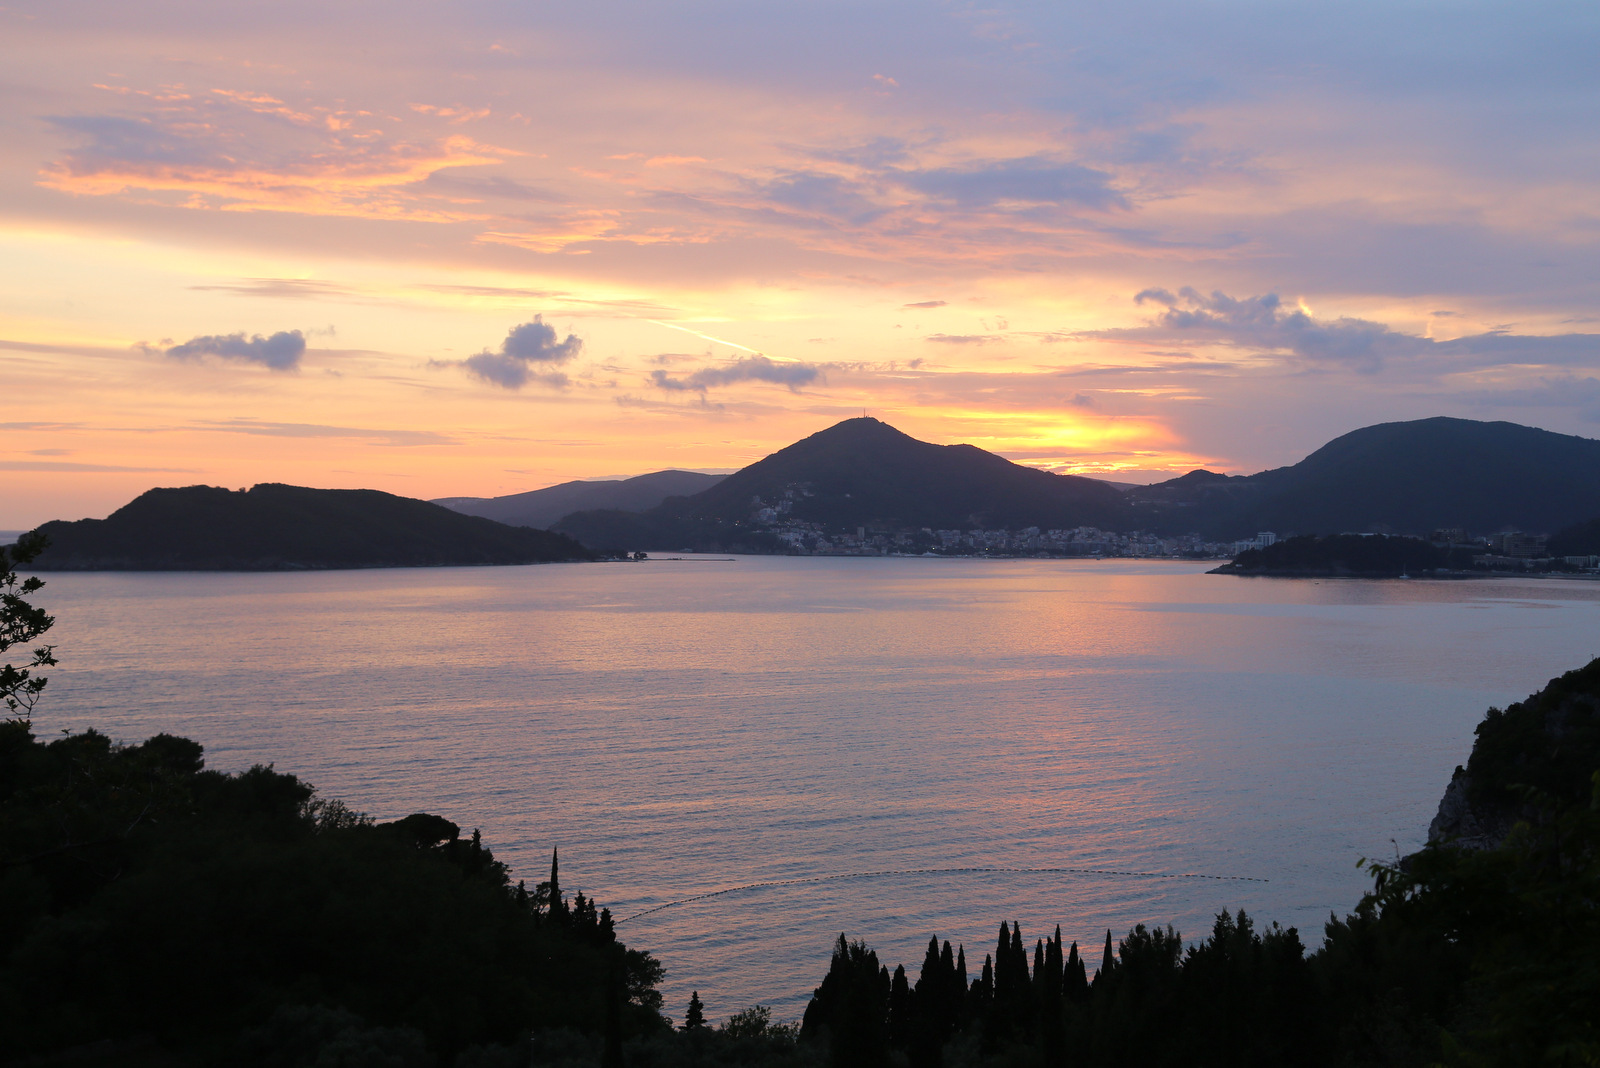 Sunset over Budva bay